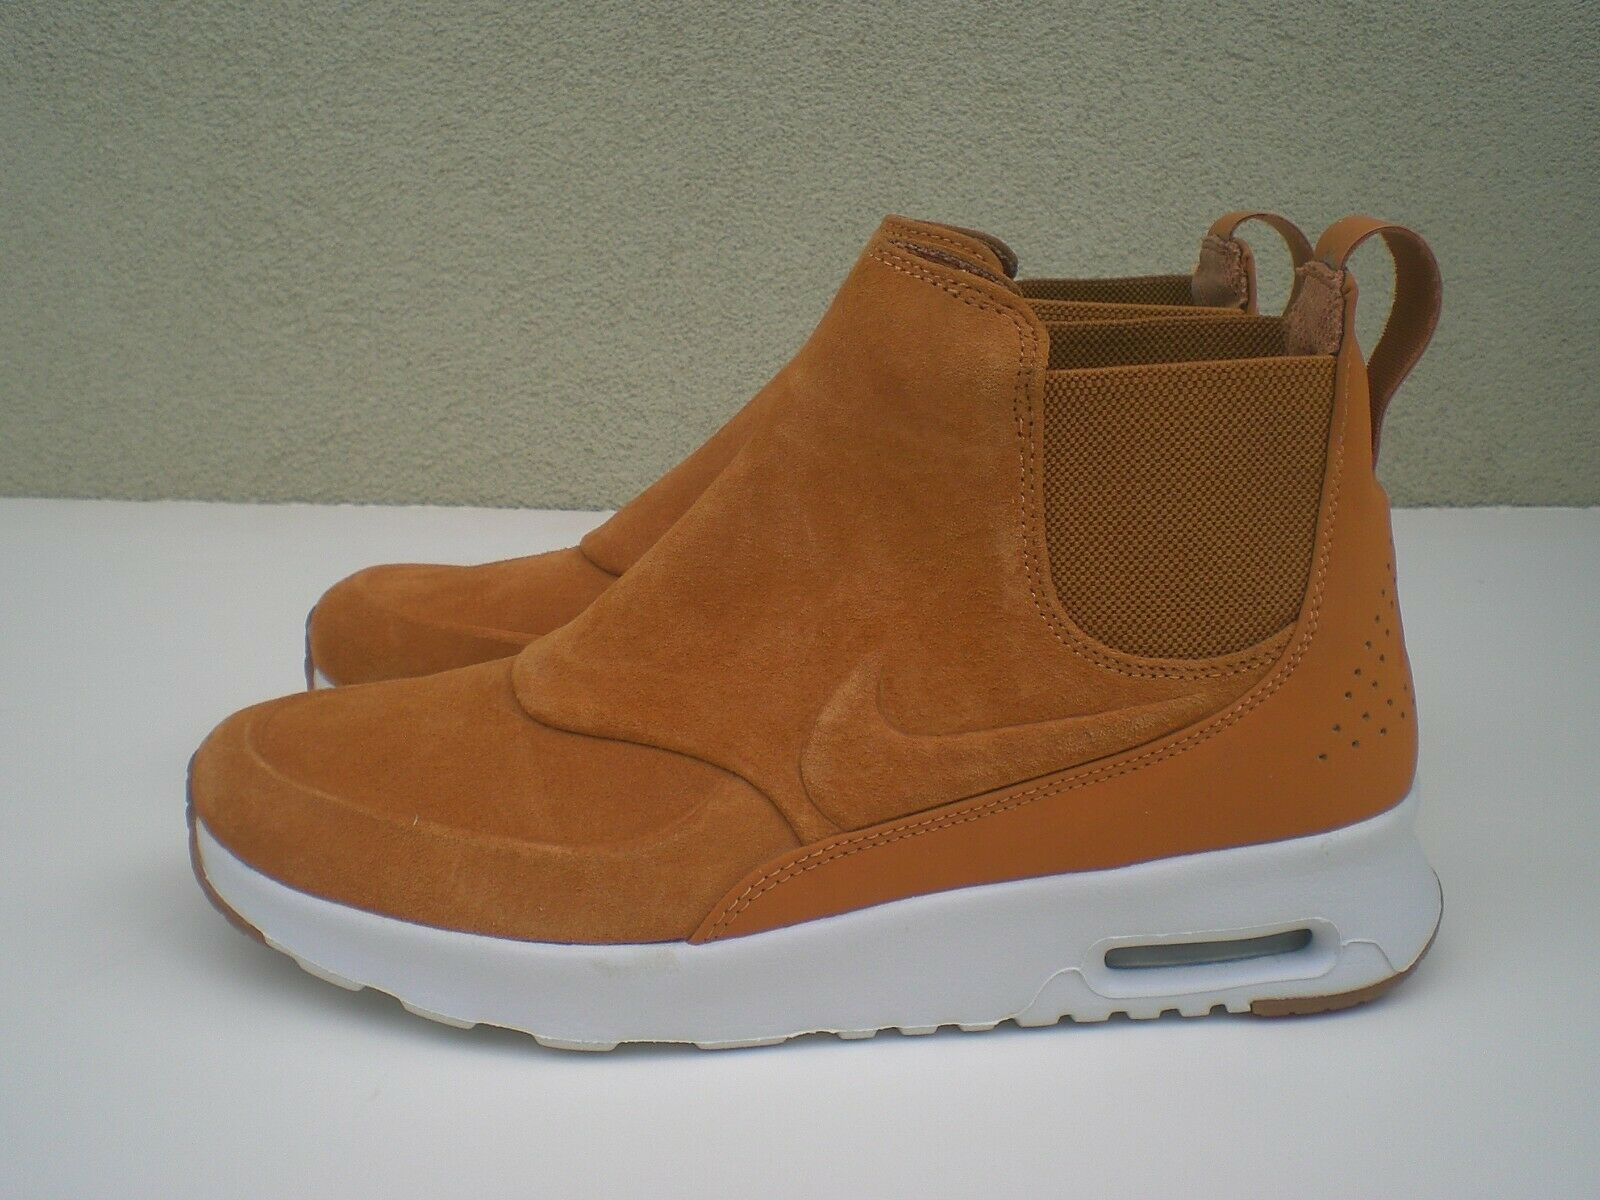 Nike Air Max Thea Mid Brown Women's Suede Leather Boots - SZ 6